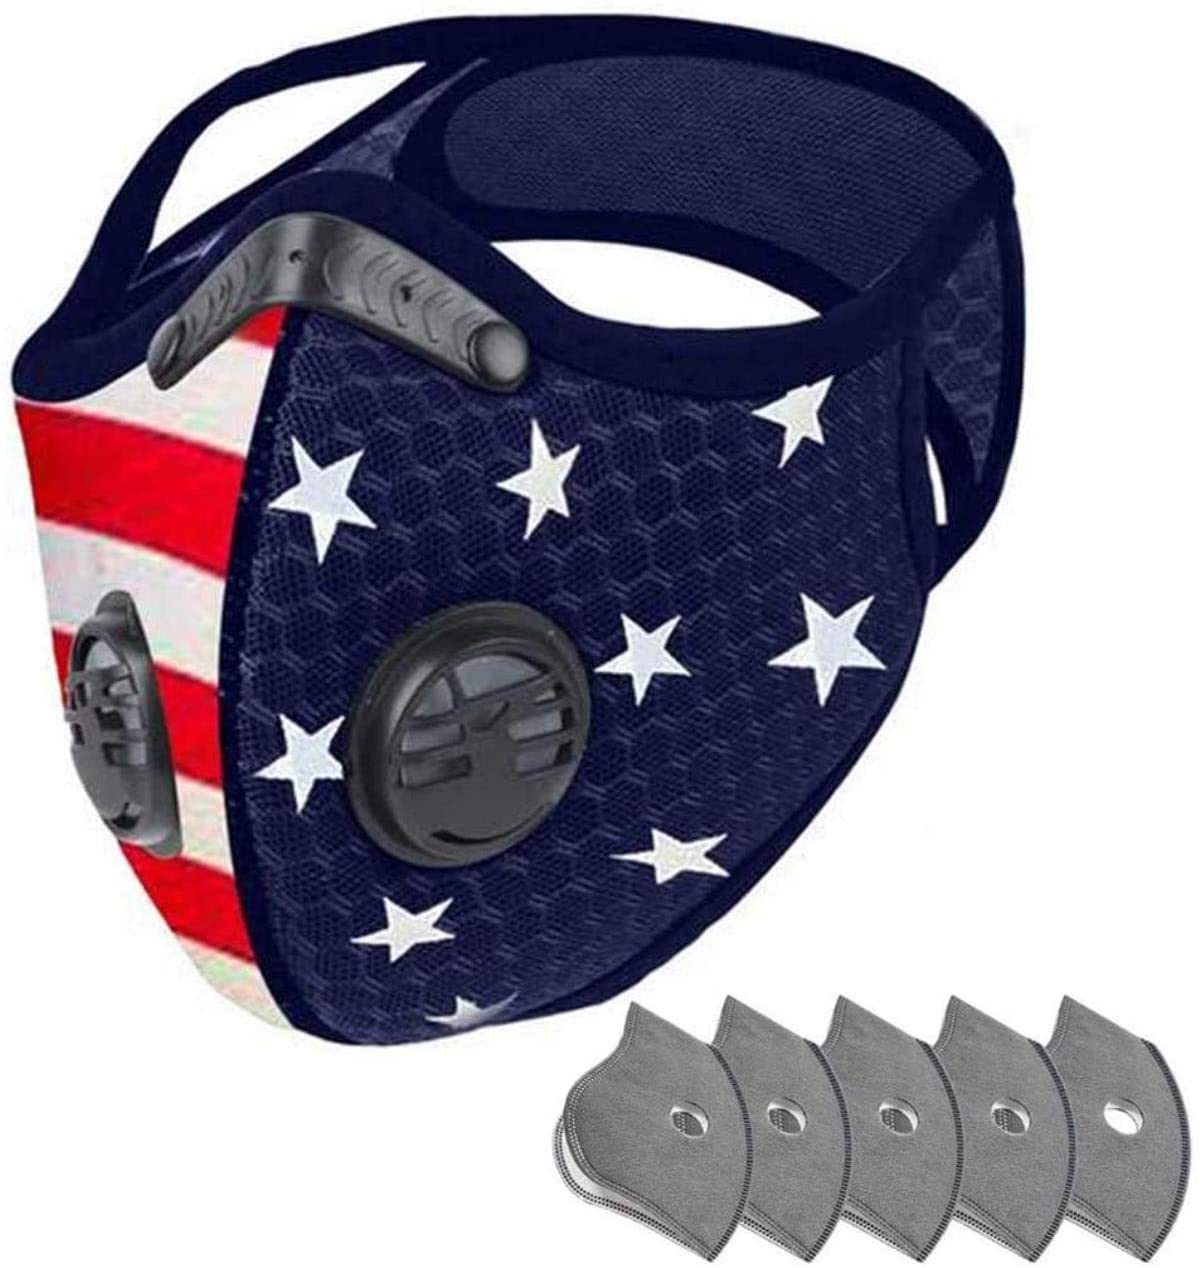 Face Bandanas with Breathing Valve, American Flag Print Face Covering, Outdoor Sports Mouth Mas Protection (1pc, Black A) (Free Size, 1pc Blue),Blue with 5PC Filter,Free Size